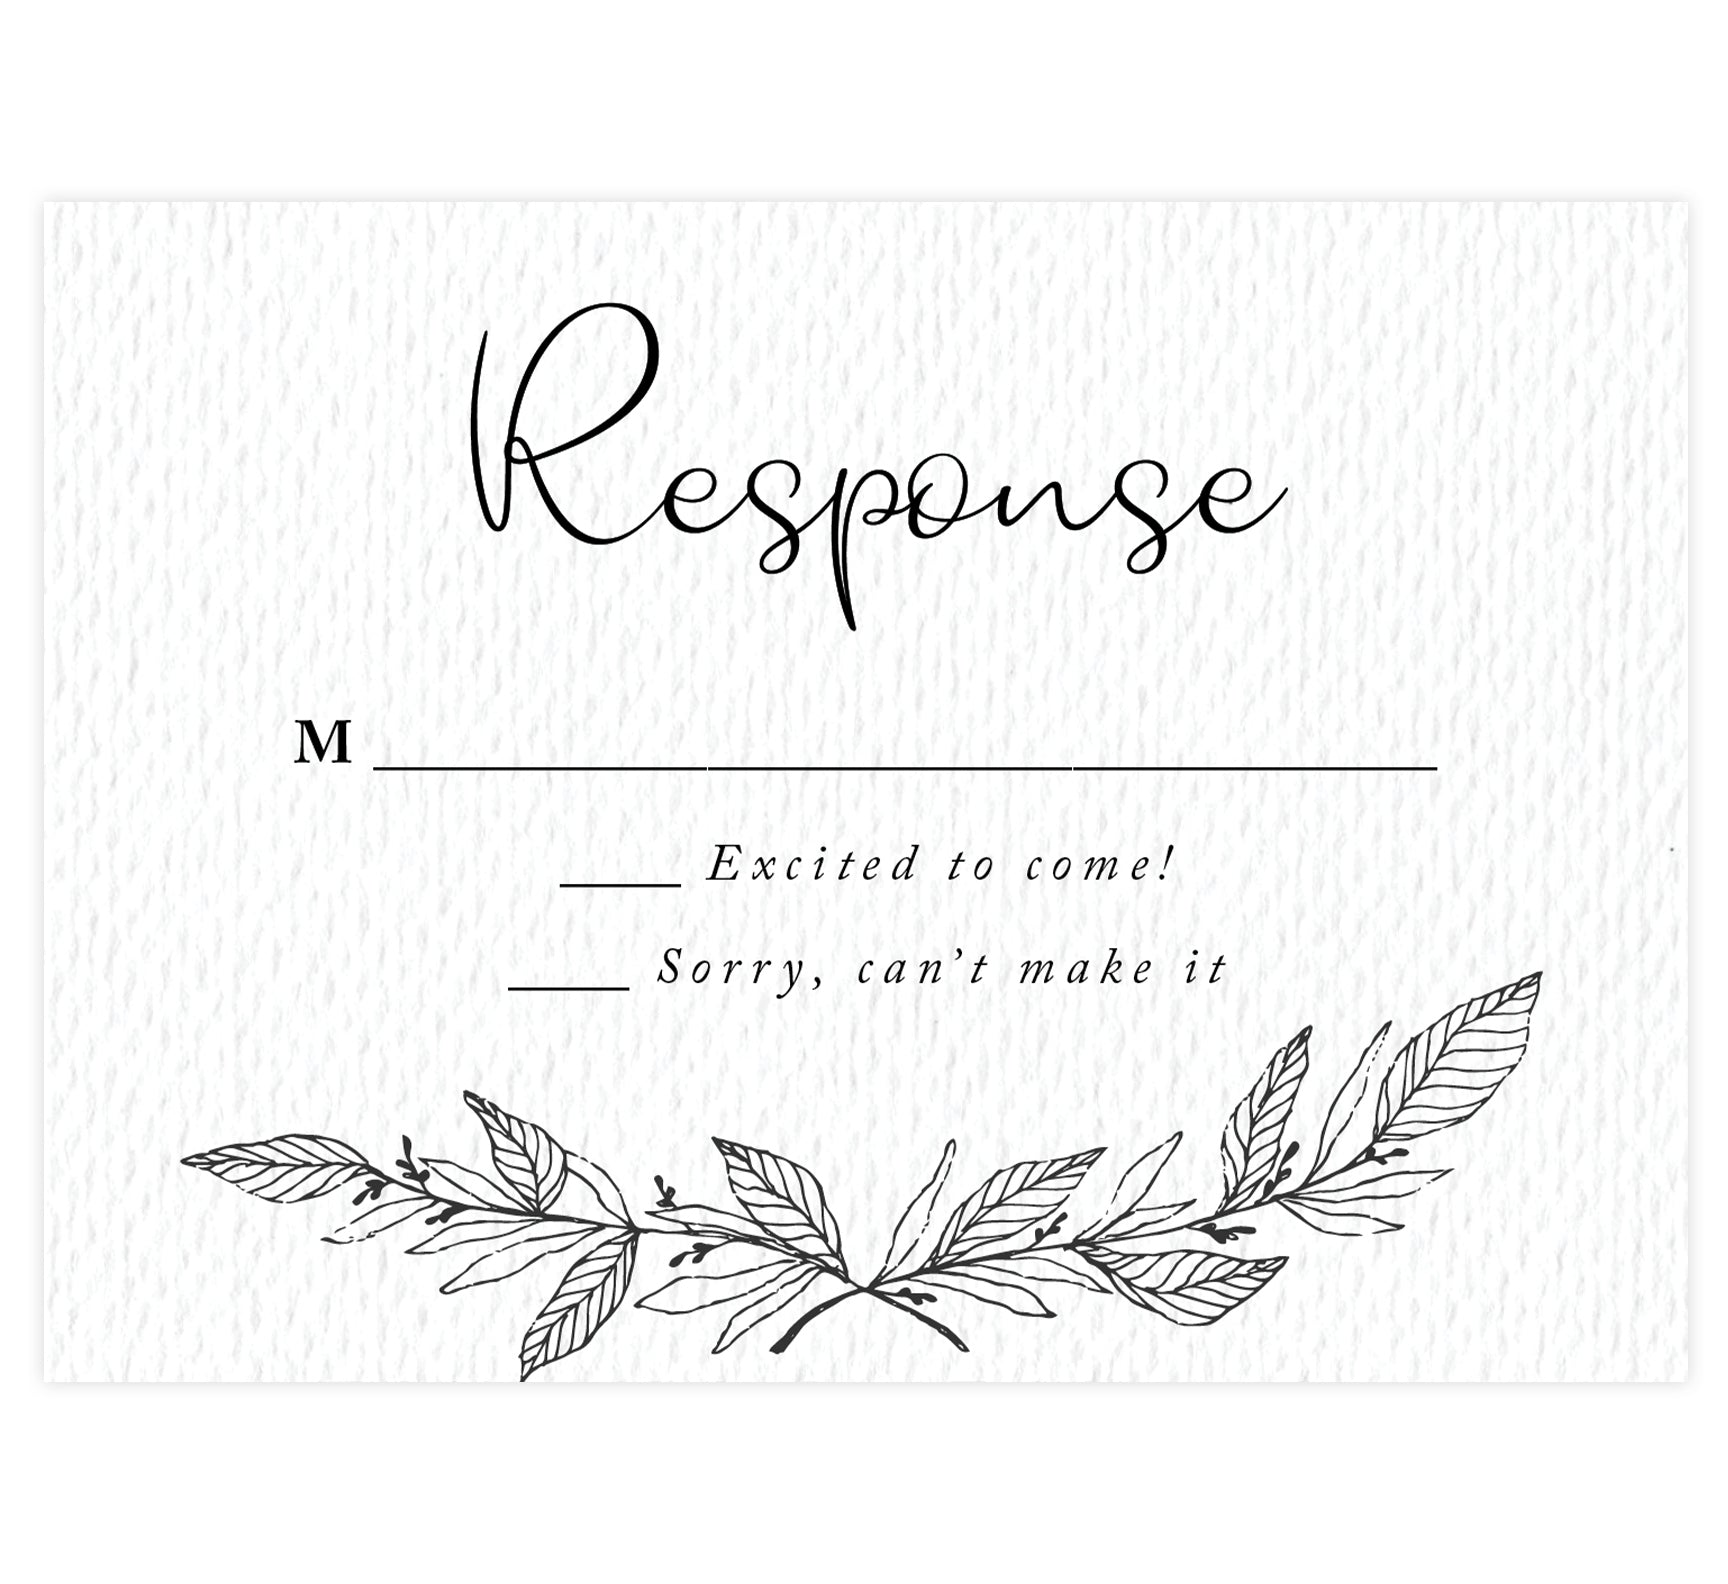 Hand Drawn Ceremony wedding response card; white textured background with hand drawn leaves at the bottom and black text